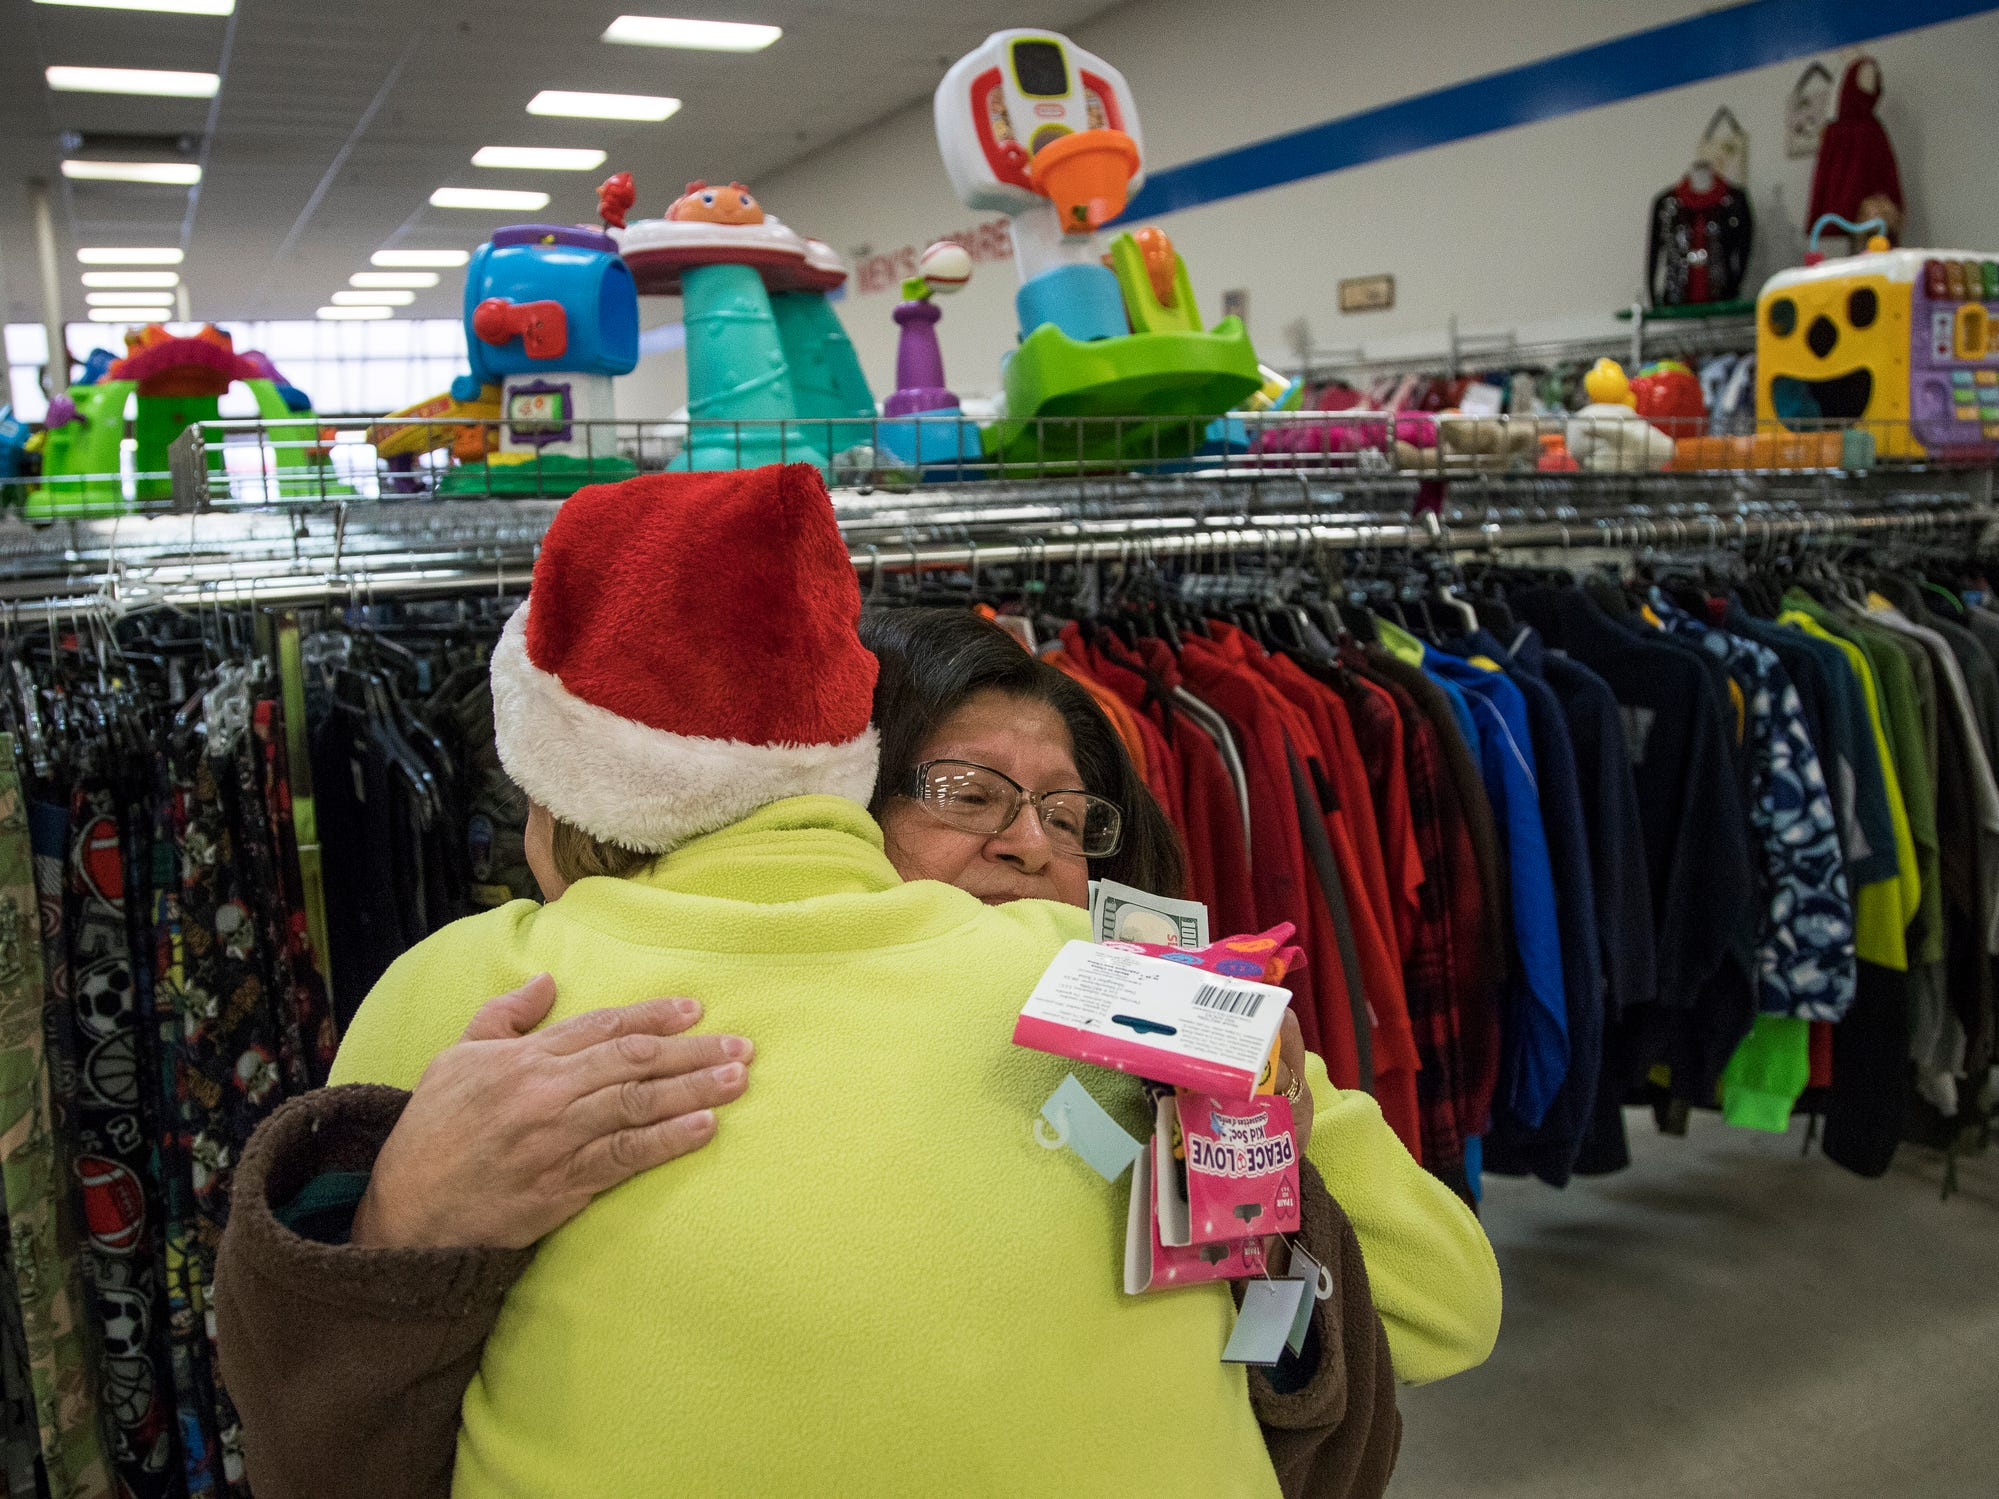 Azalia Smyth of Lincoln Park hugs Elf 32B after receiving cash from the Secret Santa at the Salvation Army in Lincoln Park, Friday Dec. 14, 2018.